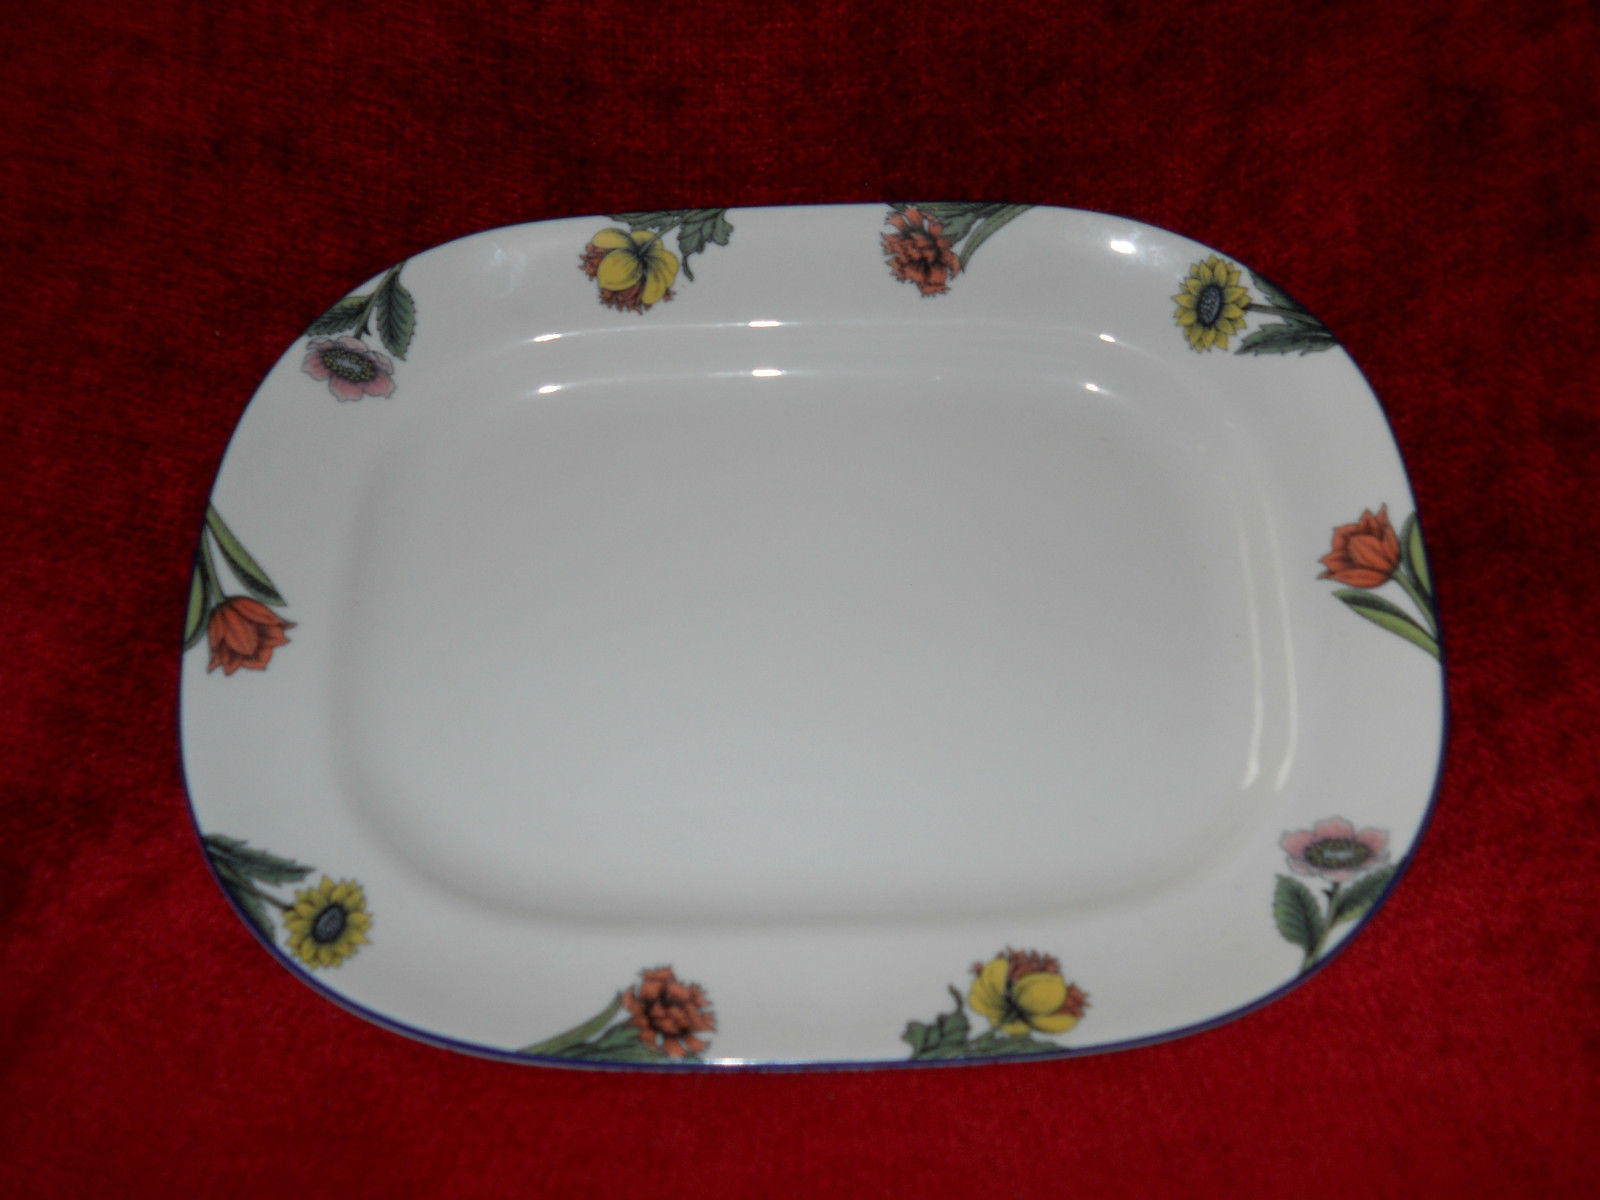 Primary image for Rorstrand Linnea oval serving platter 12 1/4""